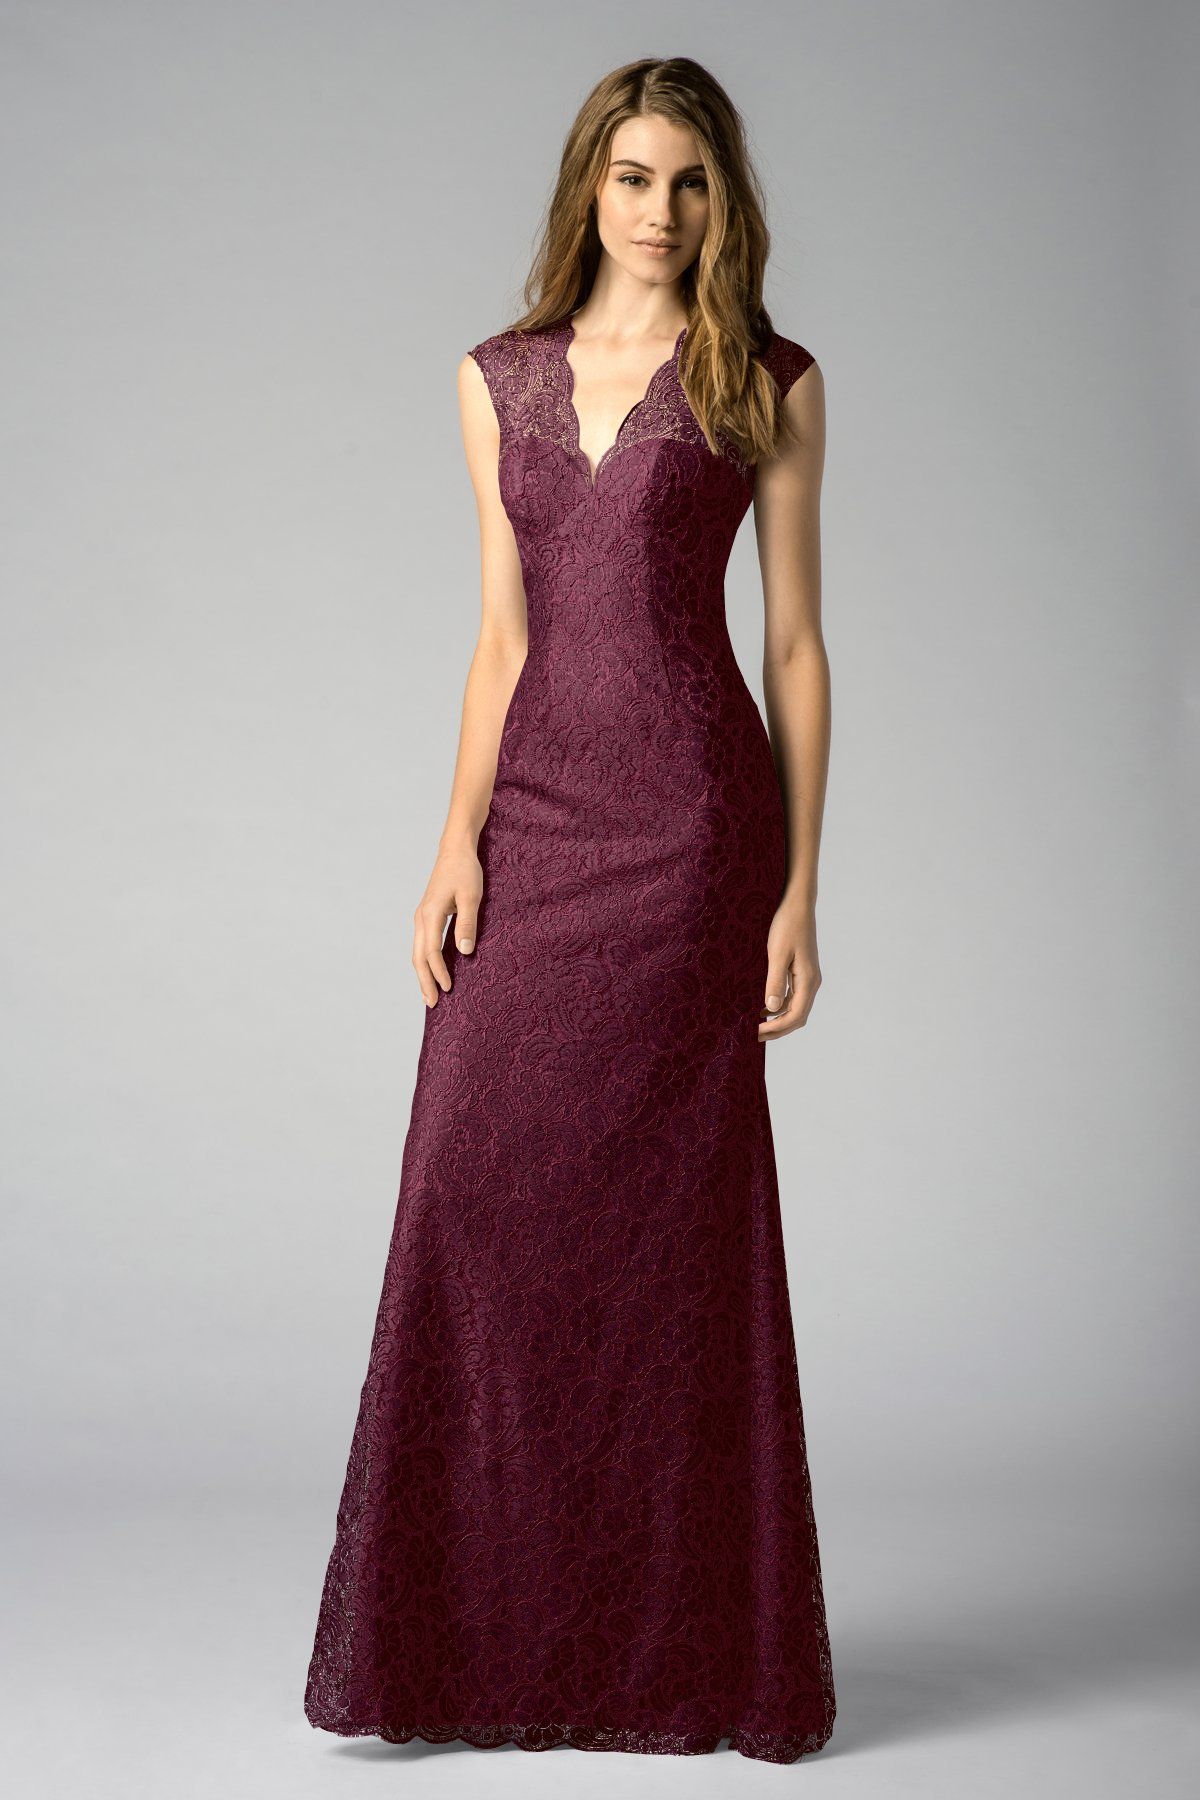 Wedding party fashion and bridal accessories watters 7252 find the perfect made to order bridesmaid dresses for your bridal party in your favorite color style and fabric at weddington way ombrellifo Image collections